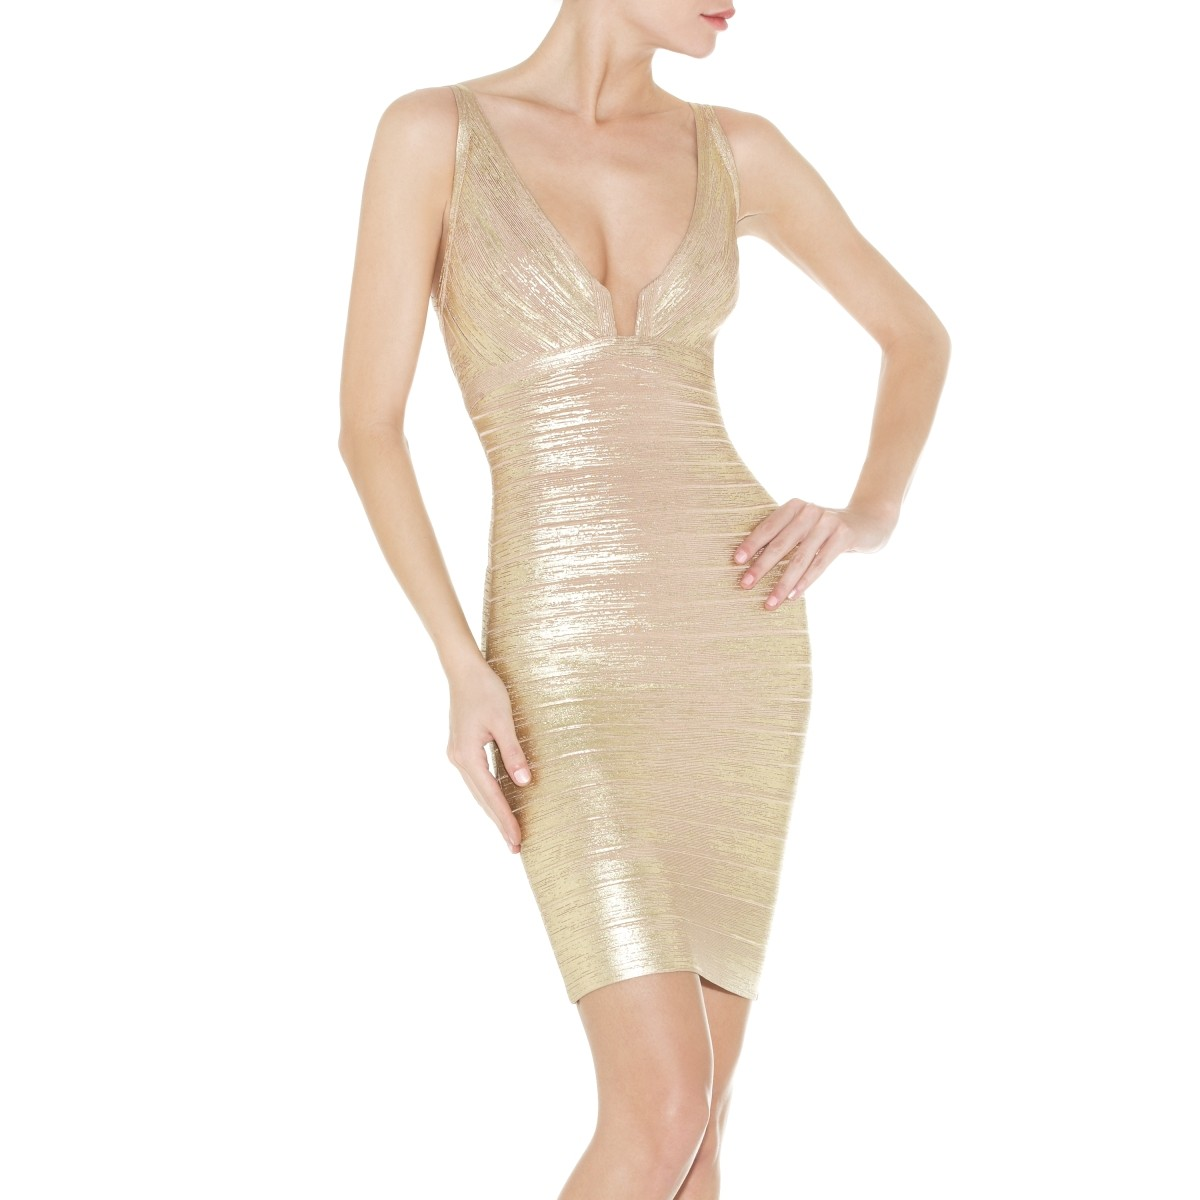 Herve Leger Sinclair Wood-Grain Foil-Print Dress